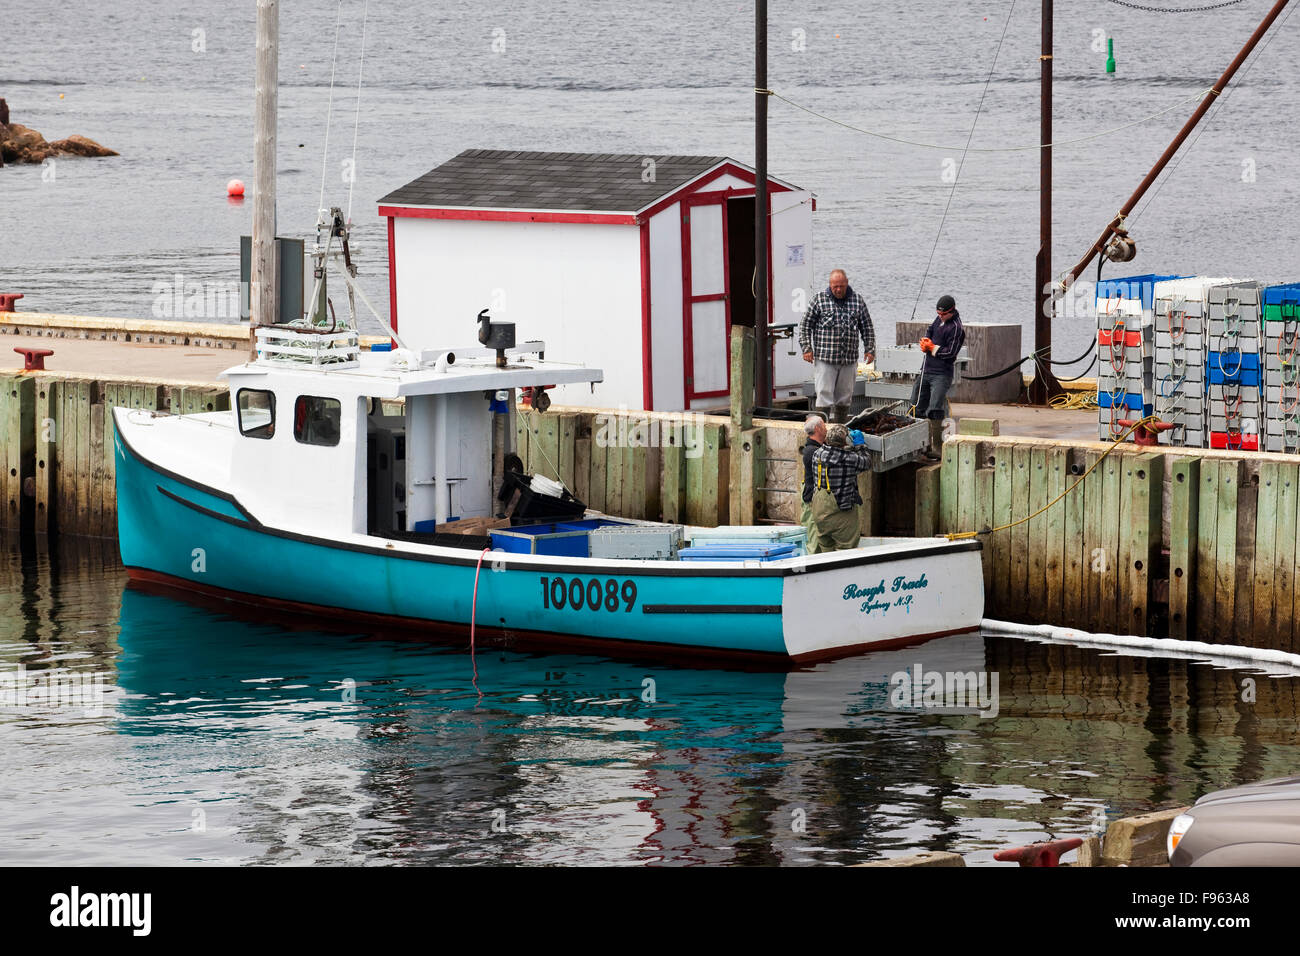 Lobster fishermen handing over their catch to buyers for weighing and processing, Neil's Harbour, Nova Scotia - Stock Image